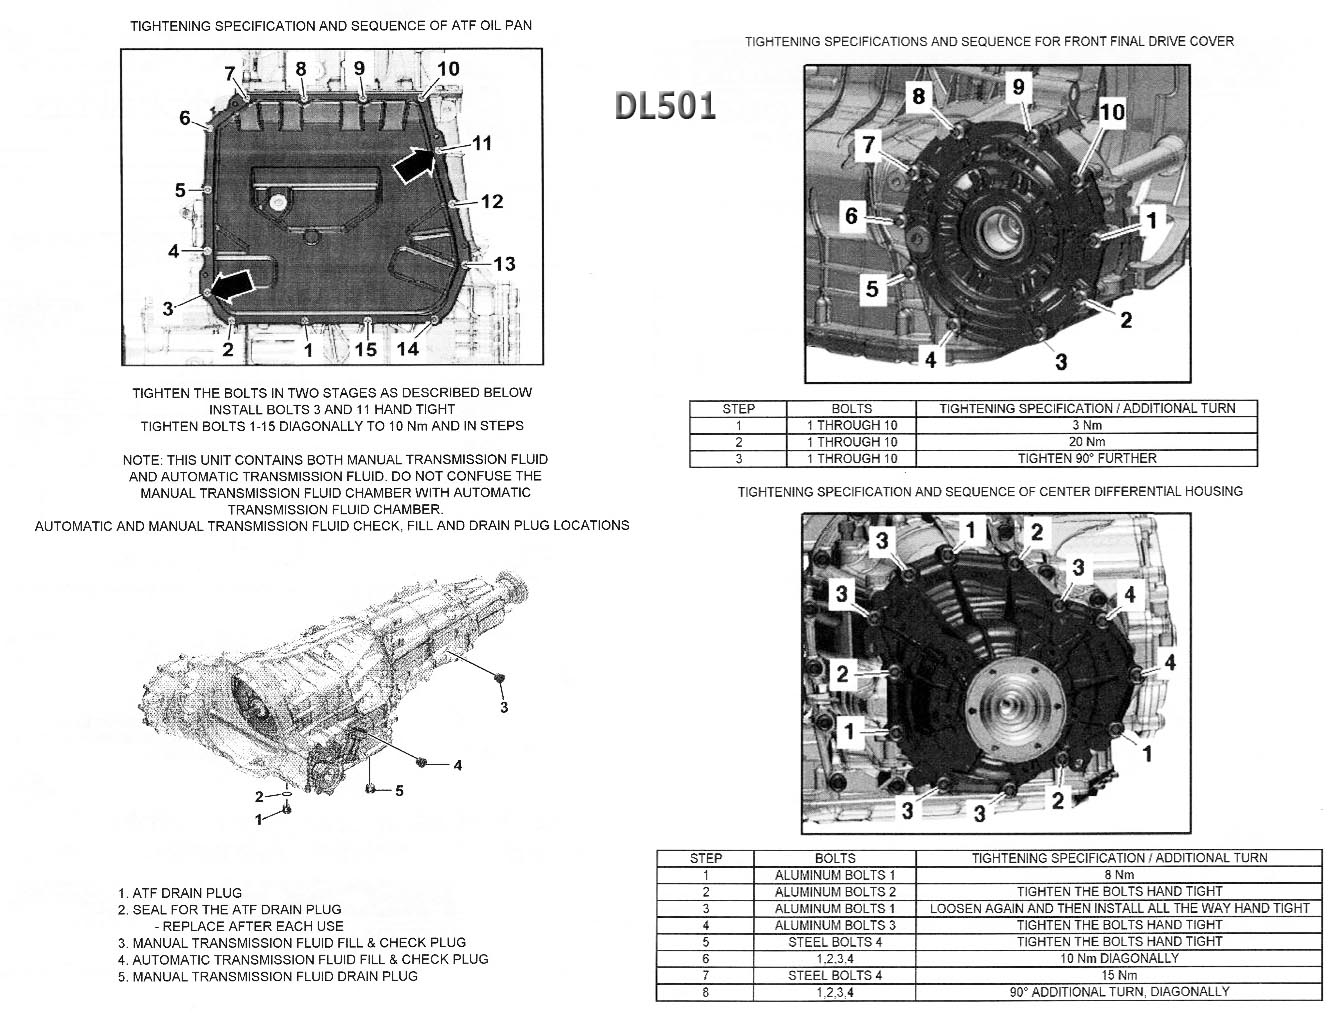 Transmission repair manuals DSG-7 (DL501, 0B5) S-tronic